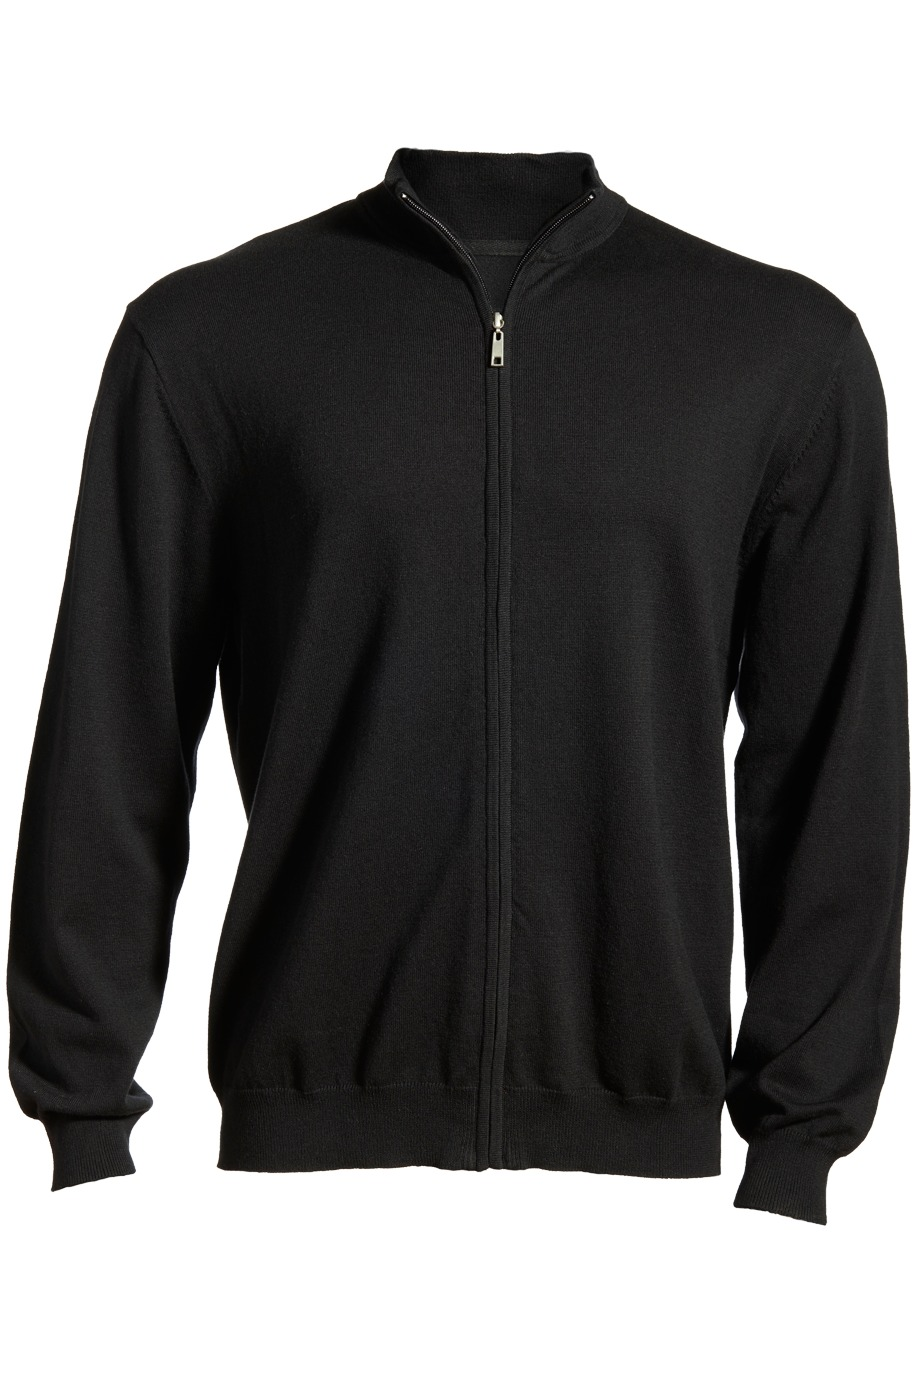 Edwards Garment 4073 - Full Zip Sweater